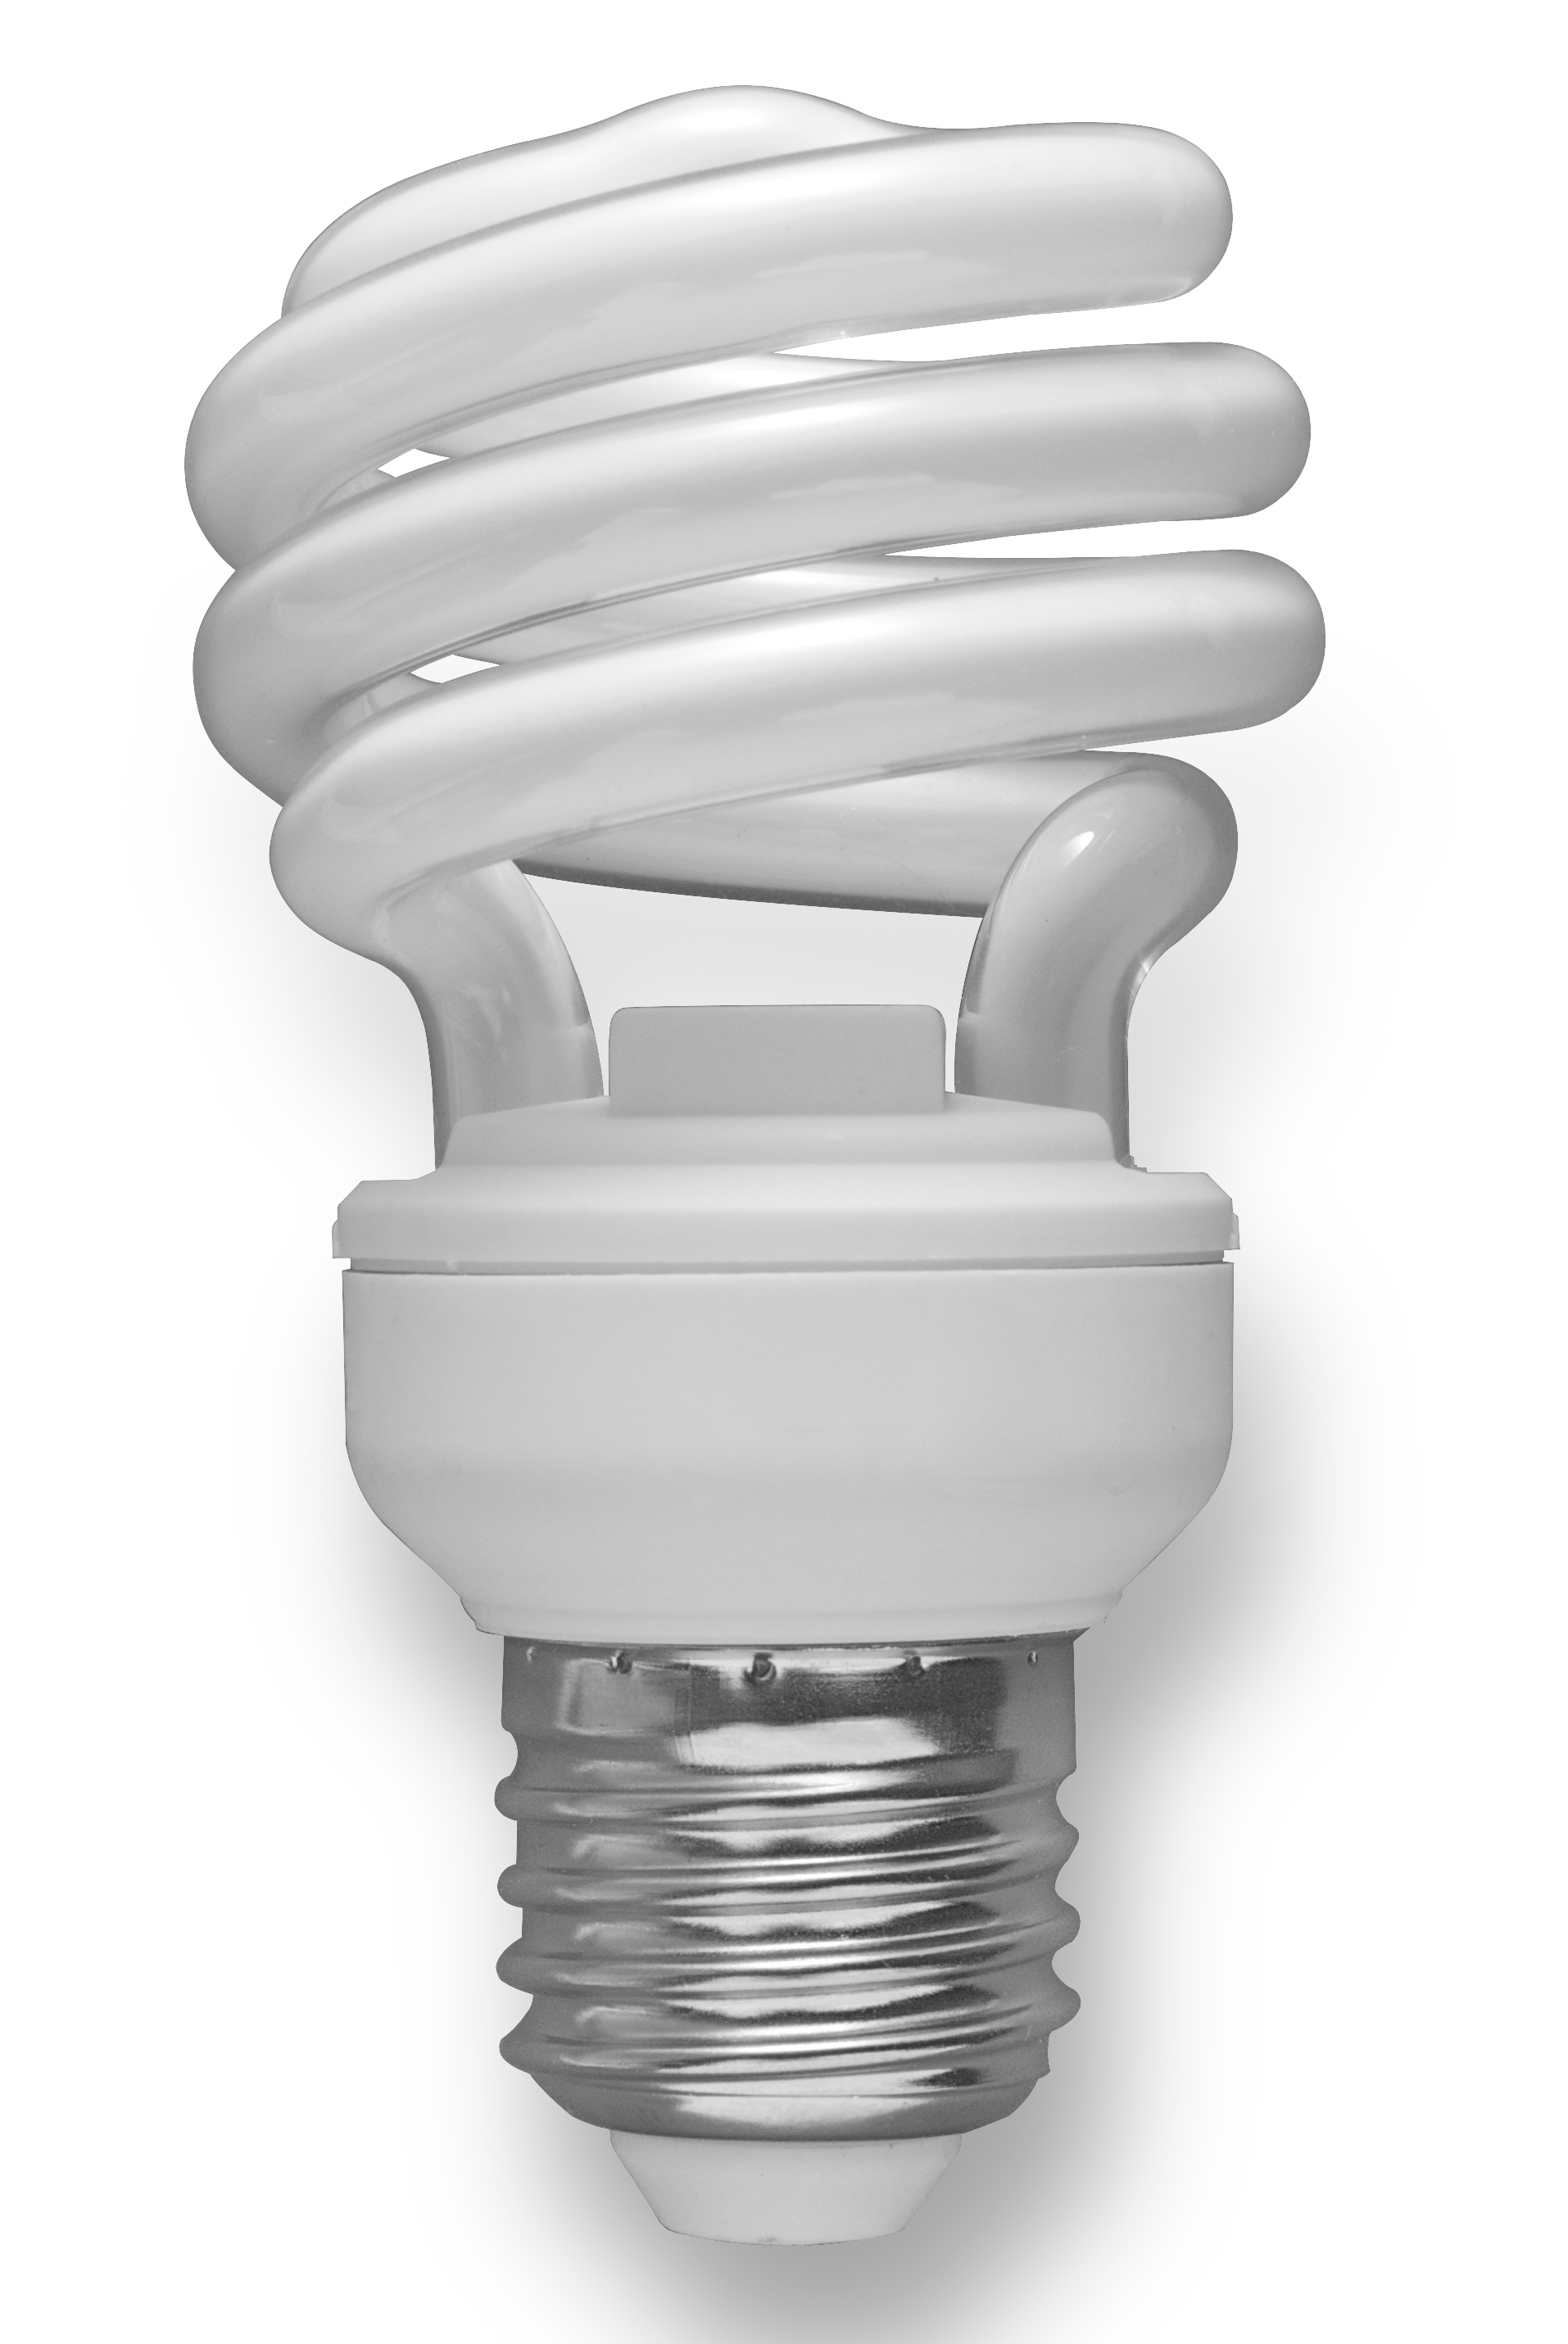 Lighting Does A Fluorescent Light Fixture Use More Energy Than An Incandescent Home